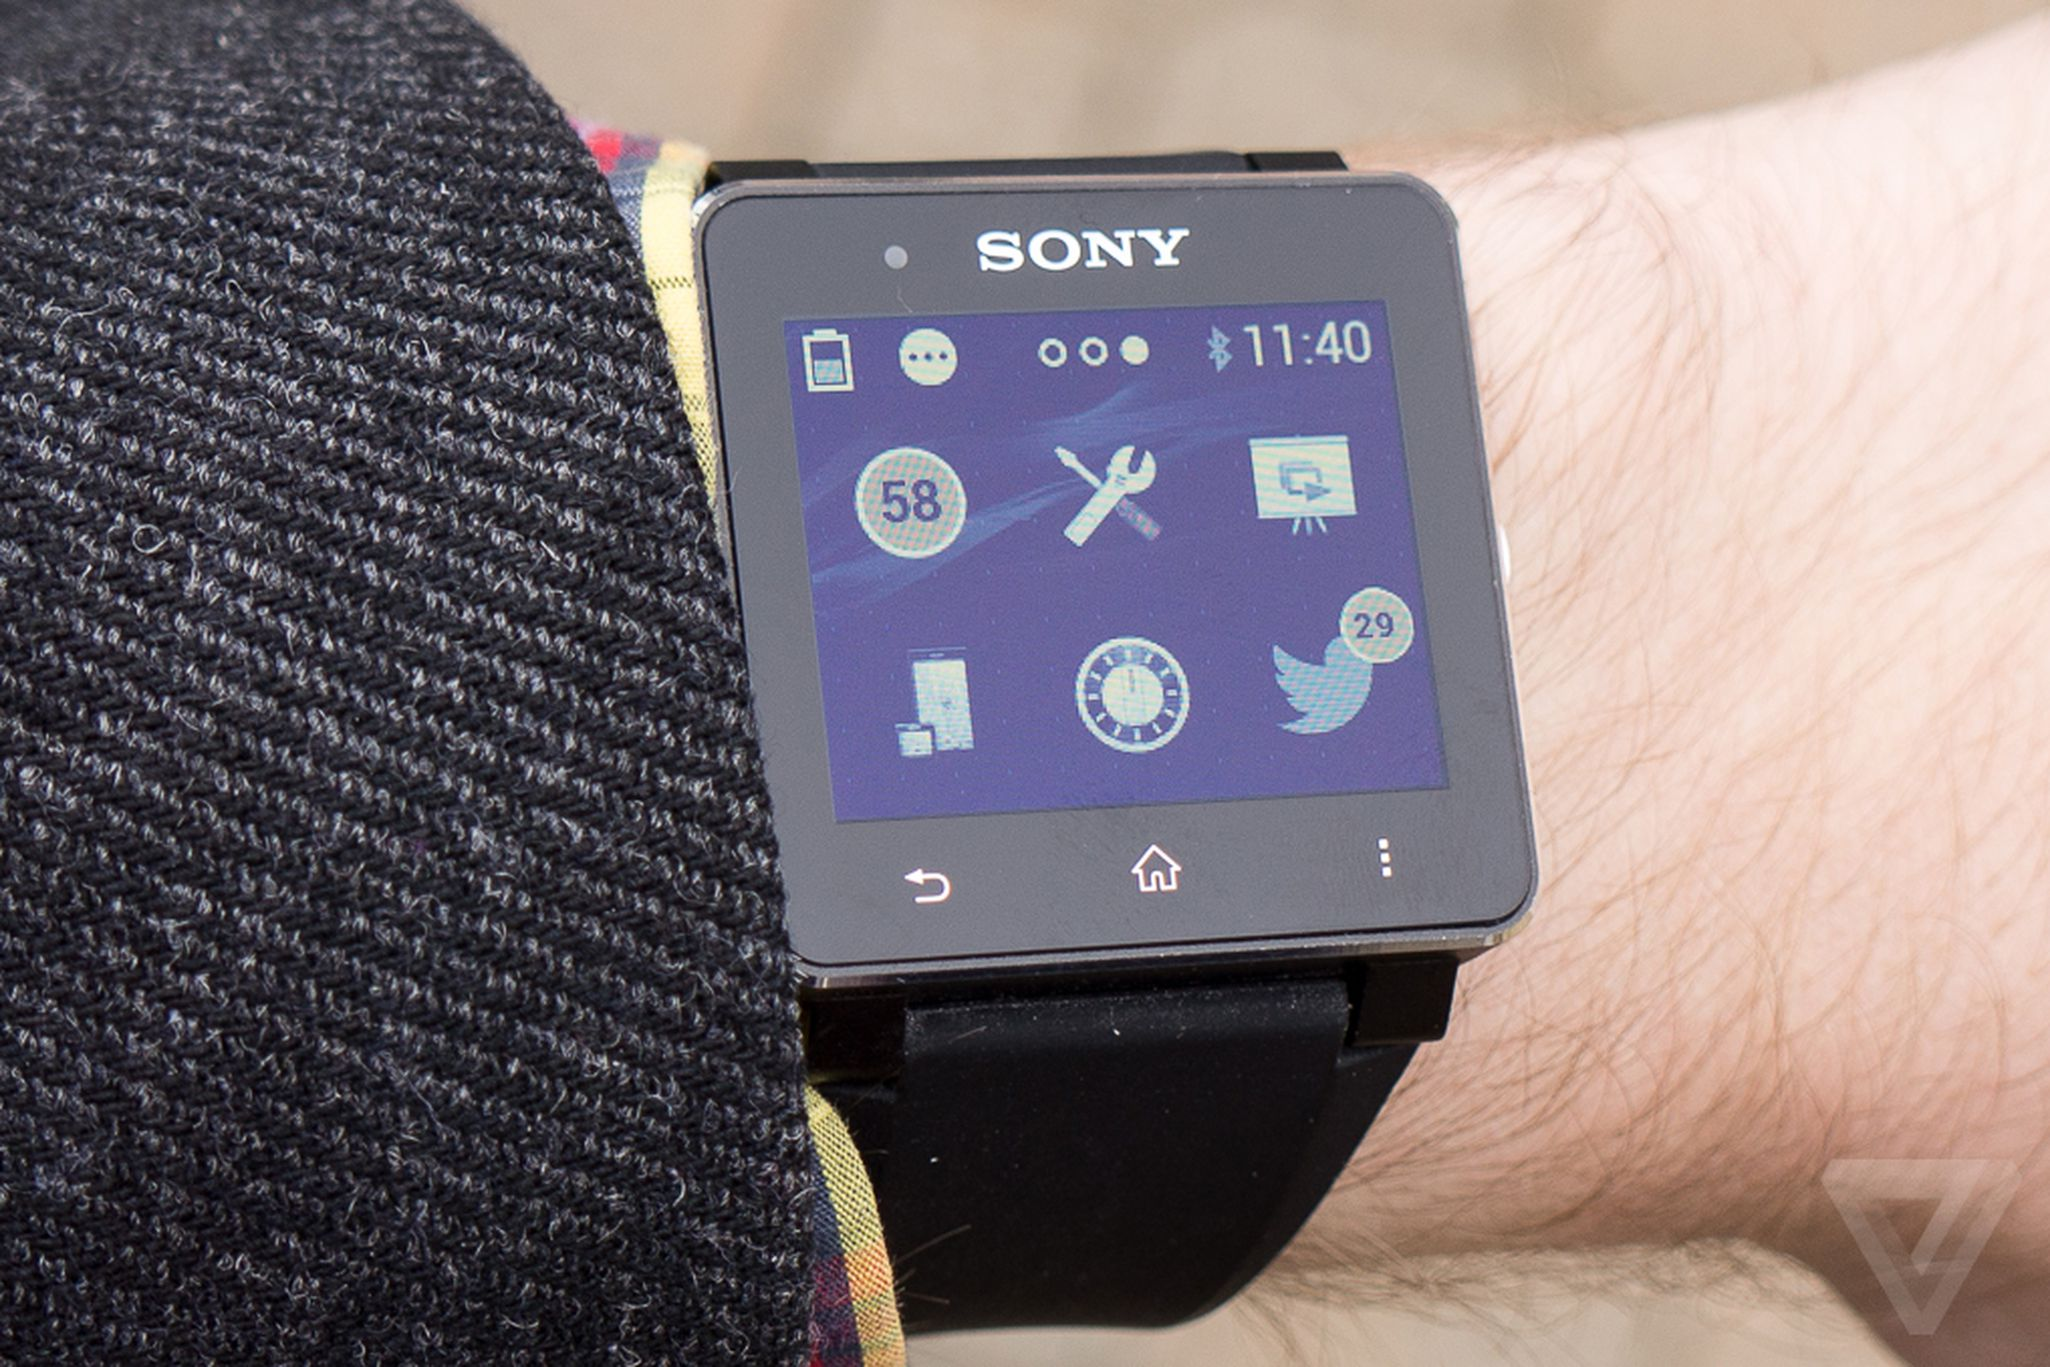 Sony SmartWatch 2 review | The Verge